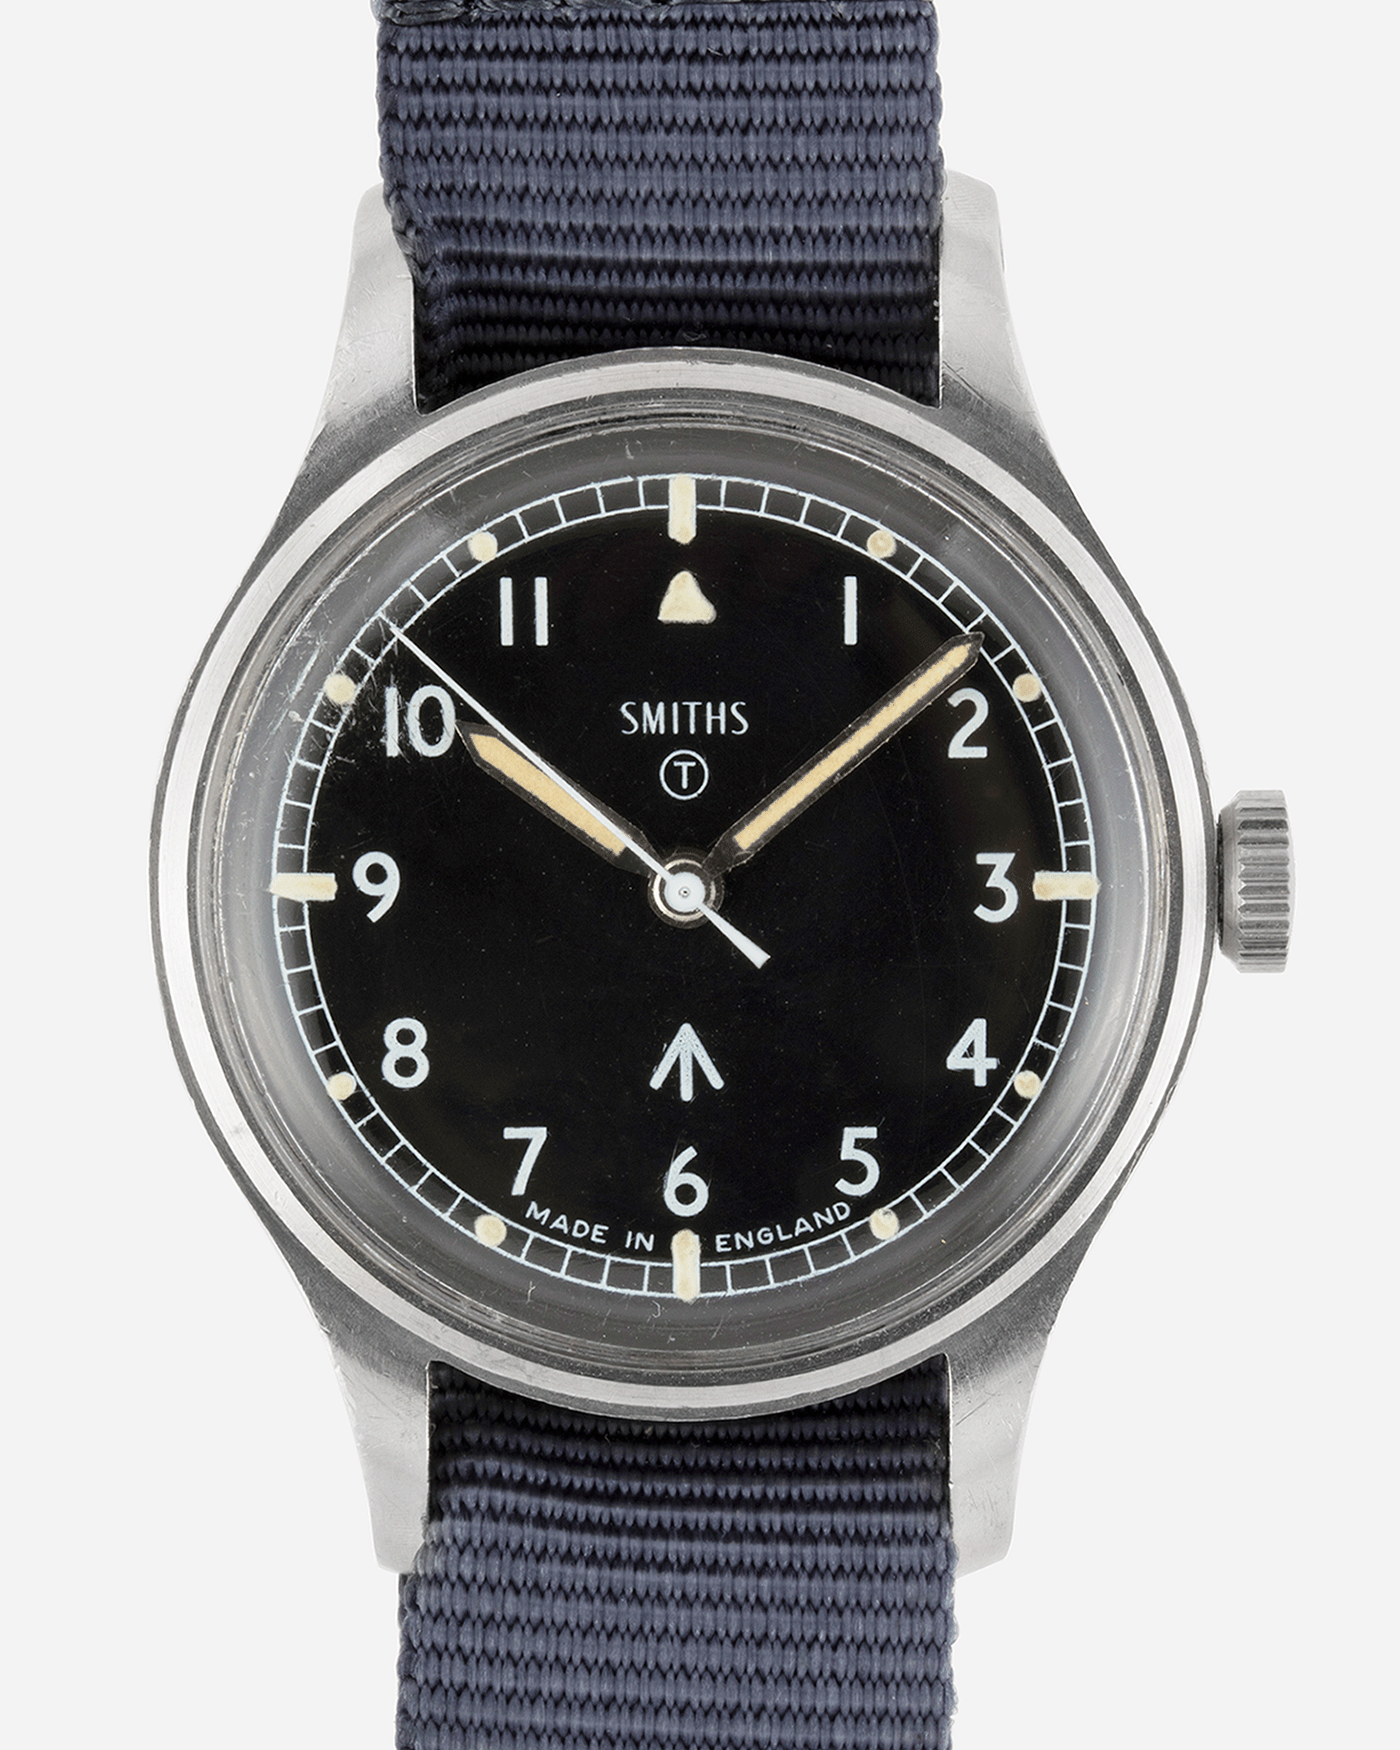 Smiths W10 Vintage British Military Watch | S.Song Vintage Watches For Sale